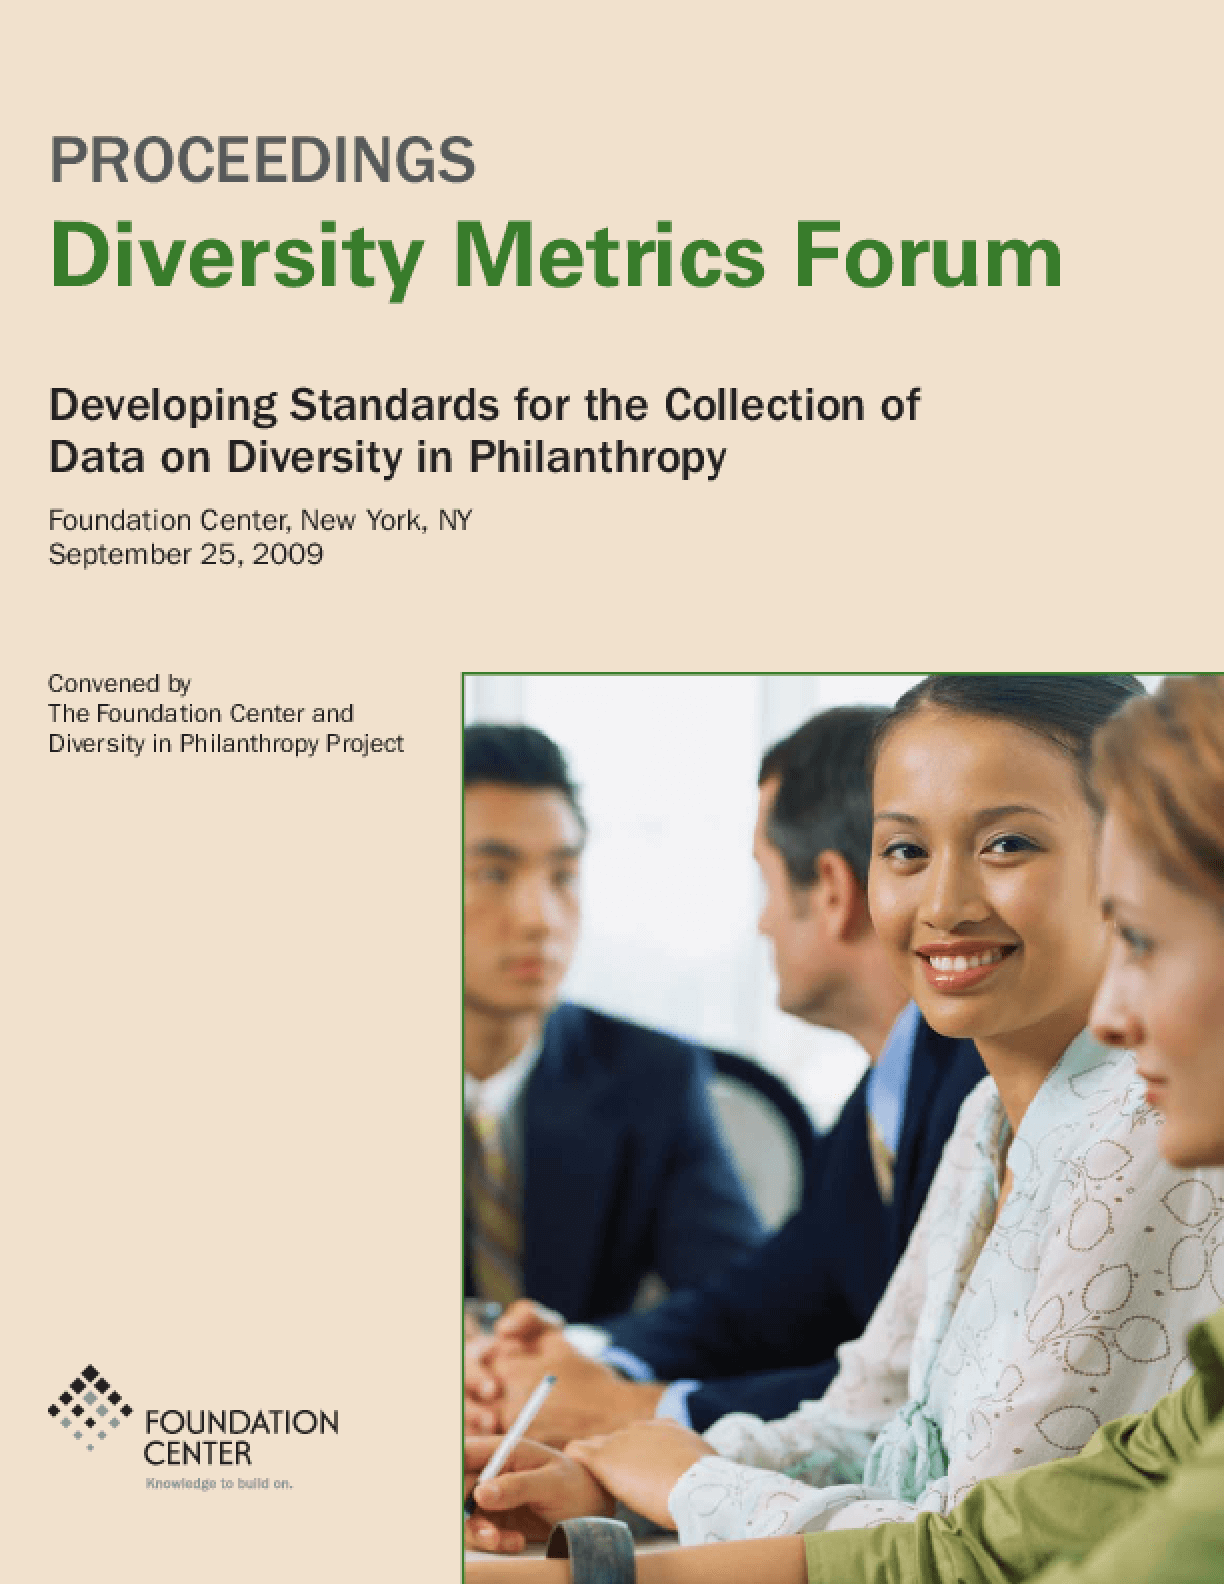 Diversity Metrics Forum: Developing Standards for the Collection of Data on Diversity in Philanthropy